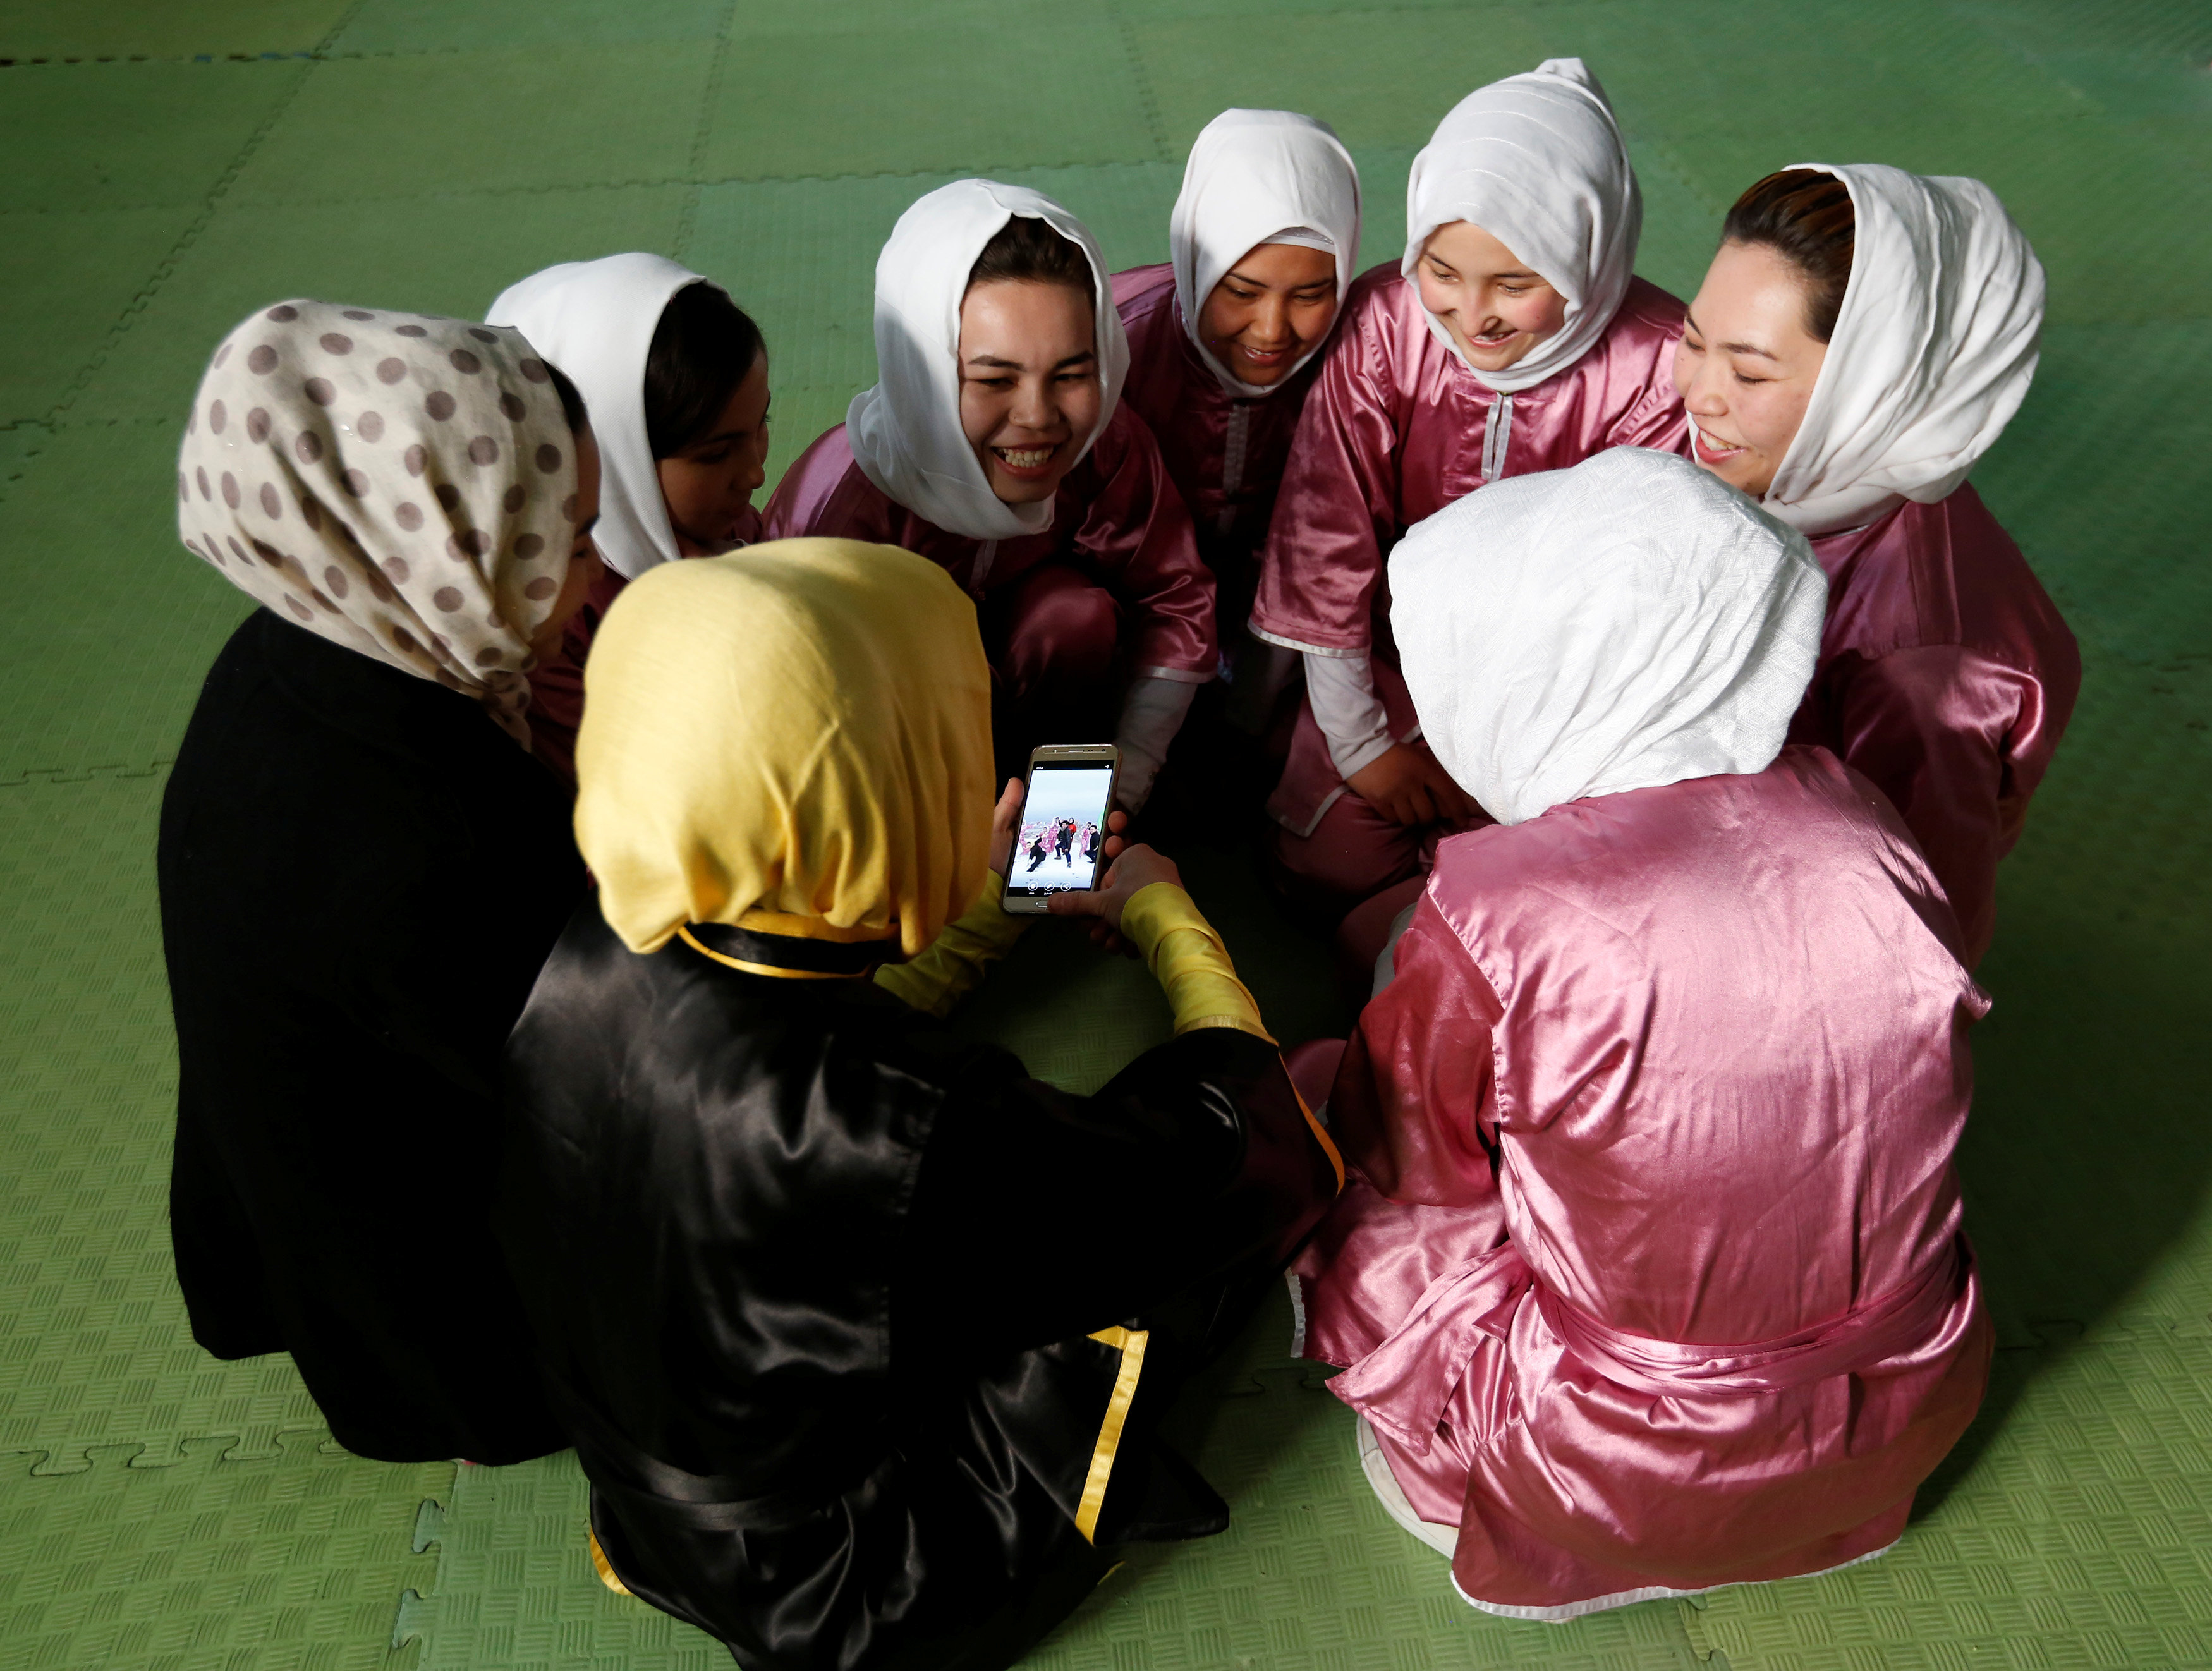 Students of the Shaolin Wushu club chat before an exercise in Kabul, Afghanistan January 19, 2017. REUTERS/Mohammad Ismail